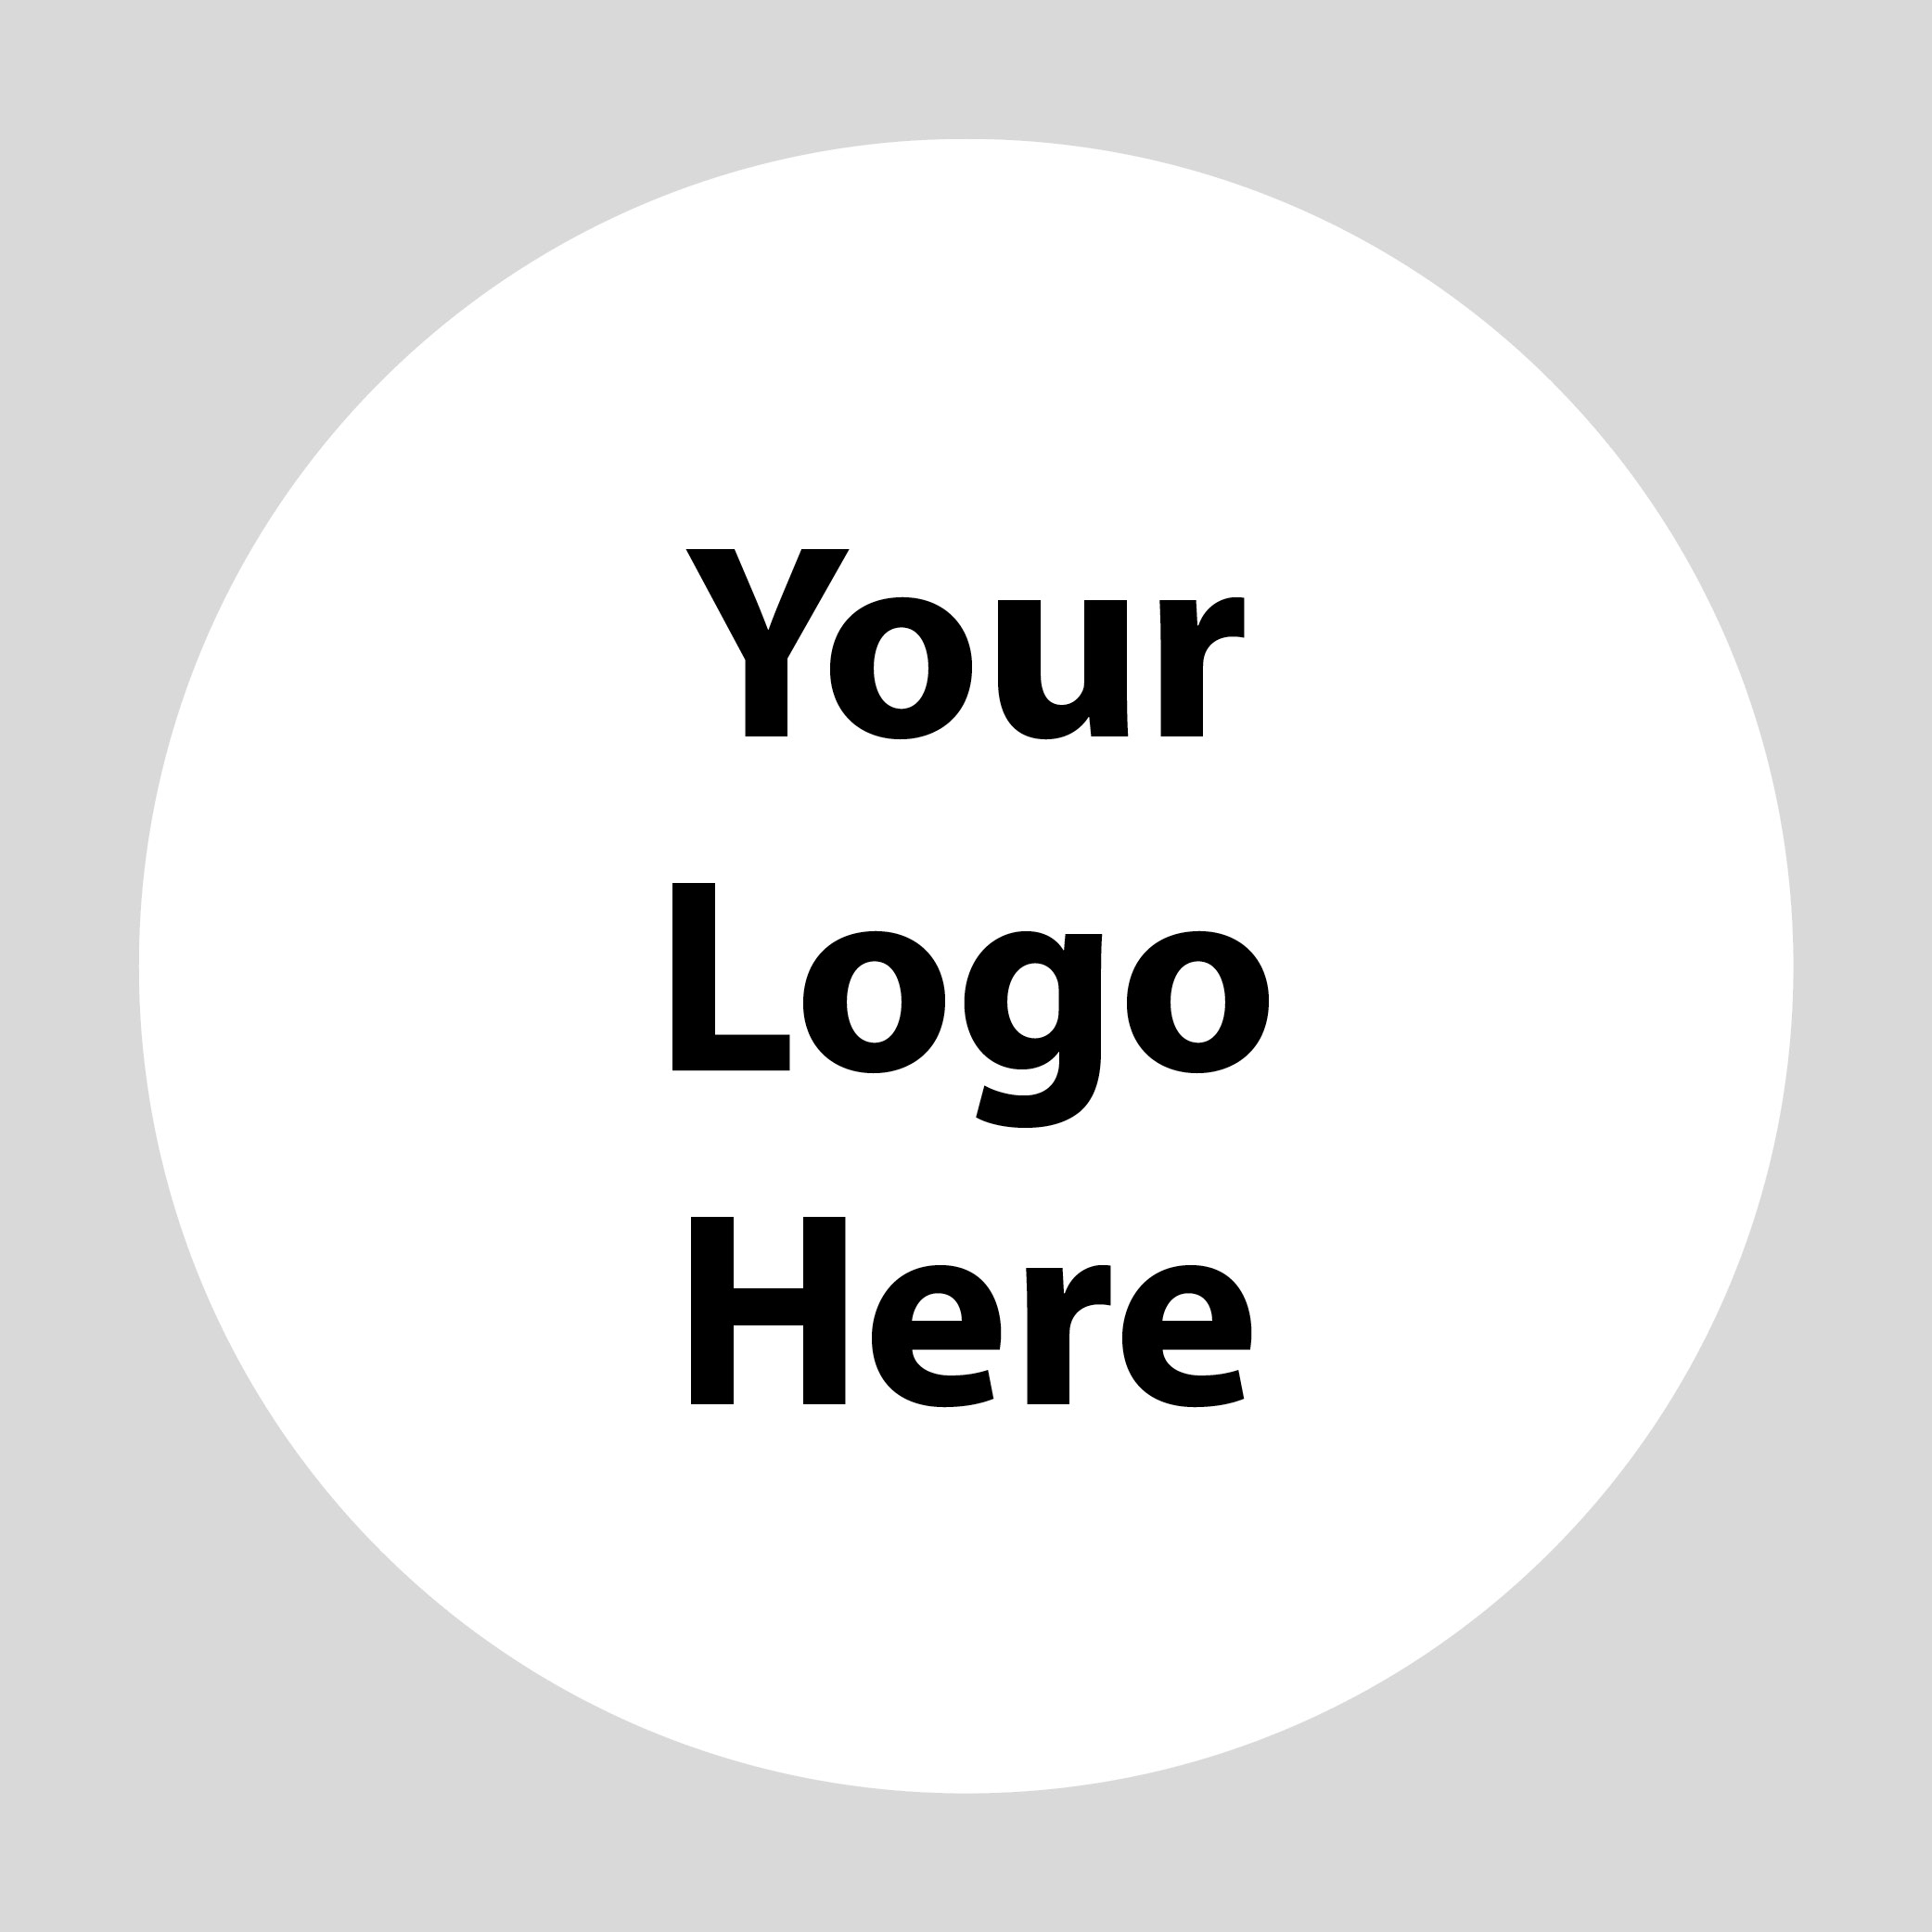 Your_Logo_Here.jpg